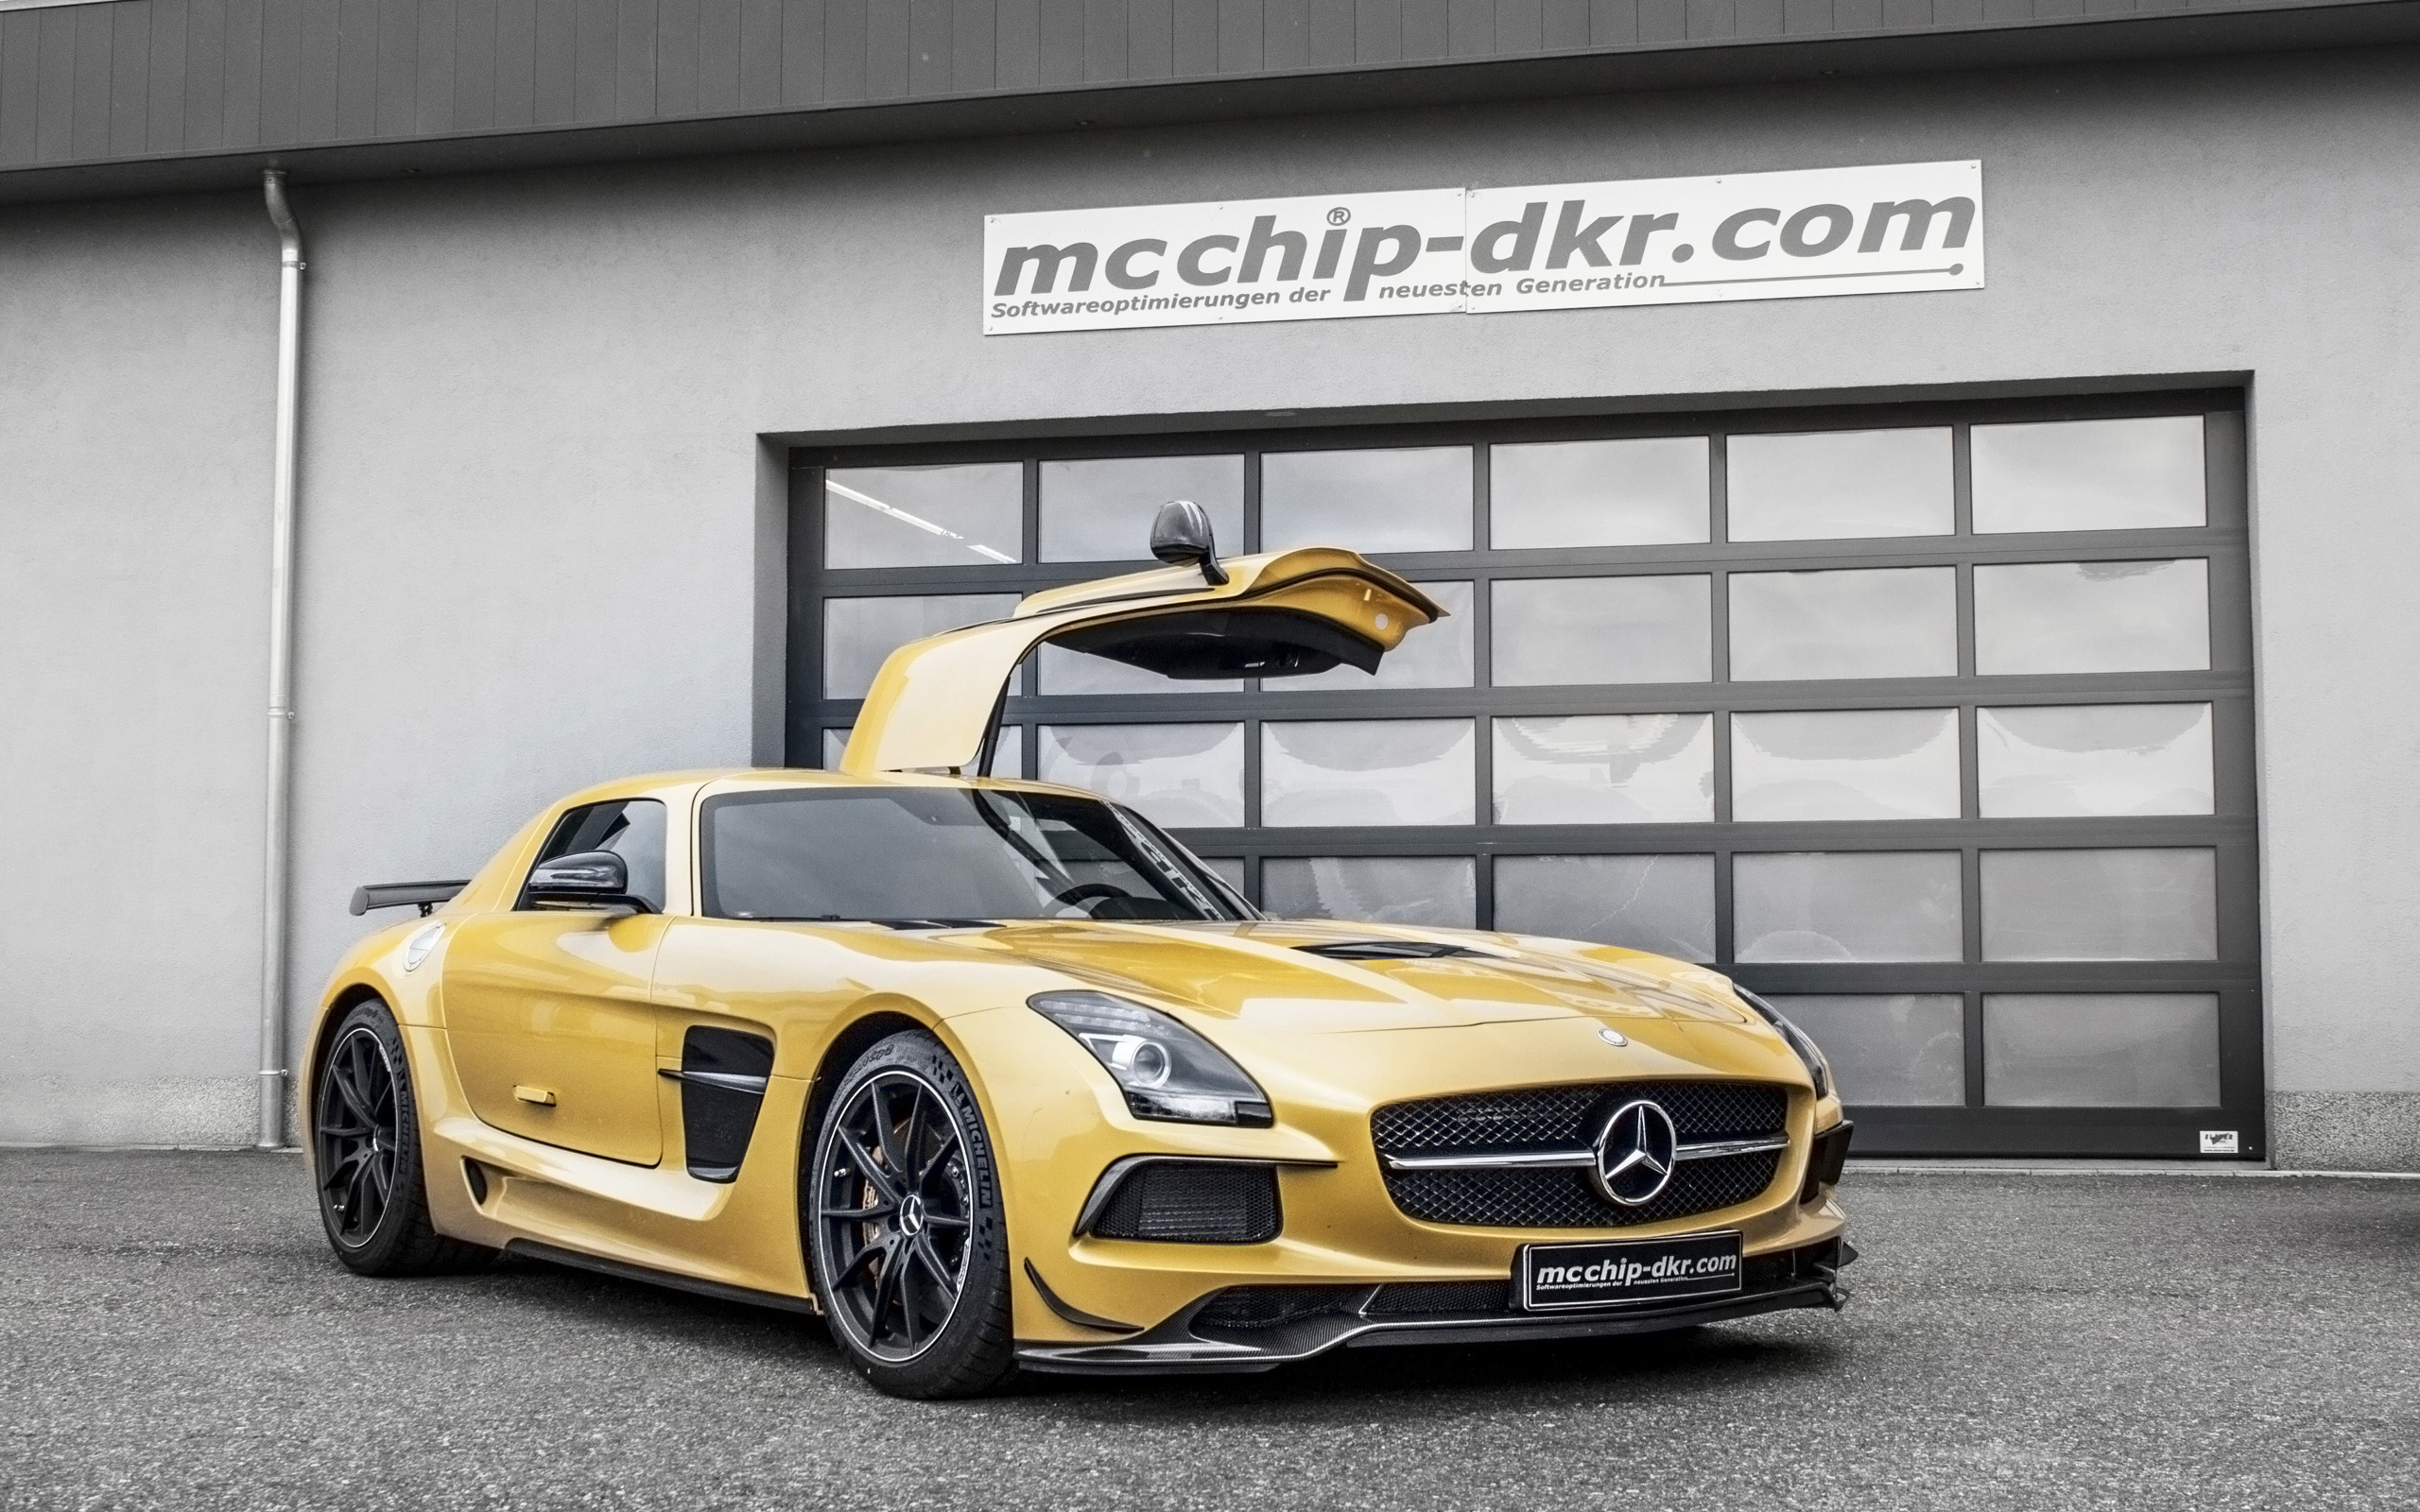 2014 mcchip dkr mercedes benz sls amg black series wallpaper hd. Black Bedroom Furniture Sets. Home Design Ideas